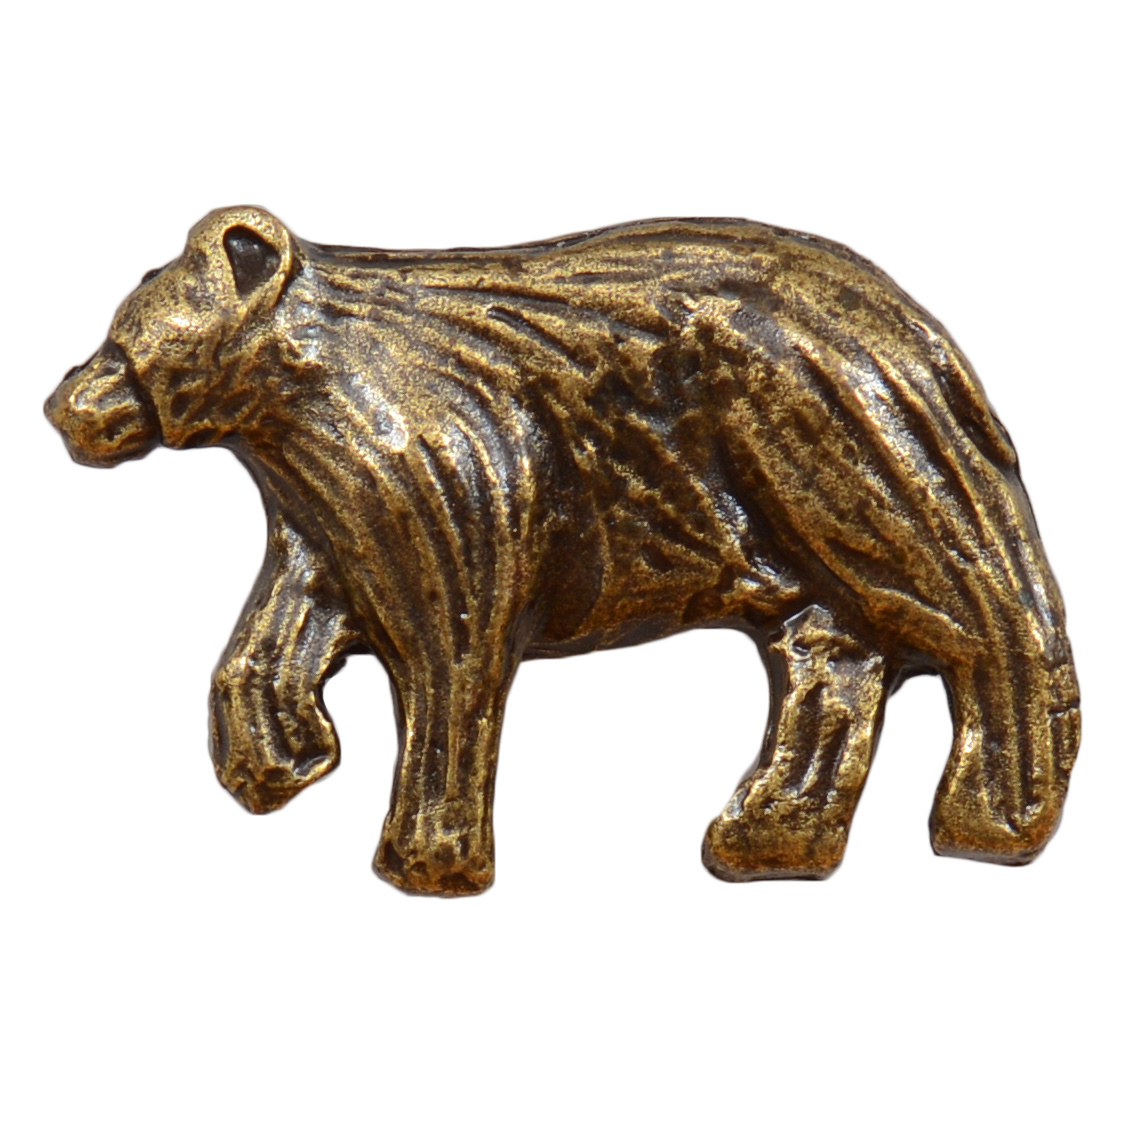 Walking Bear Cabinet Knob - Nose Facing Left